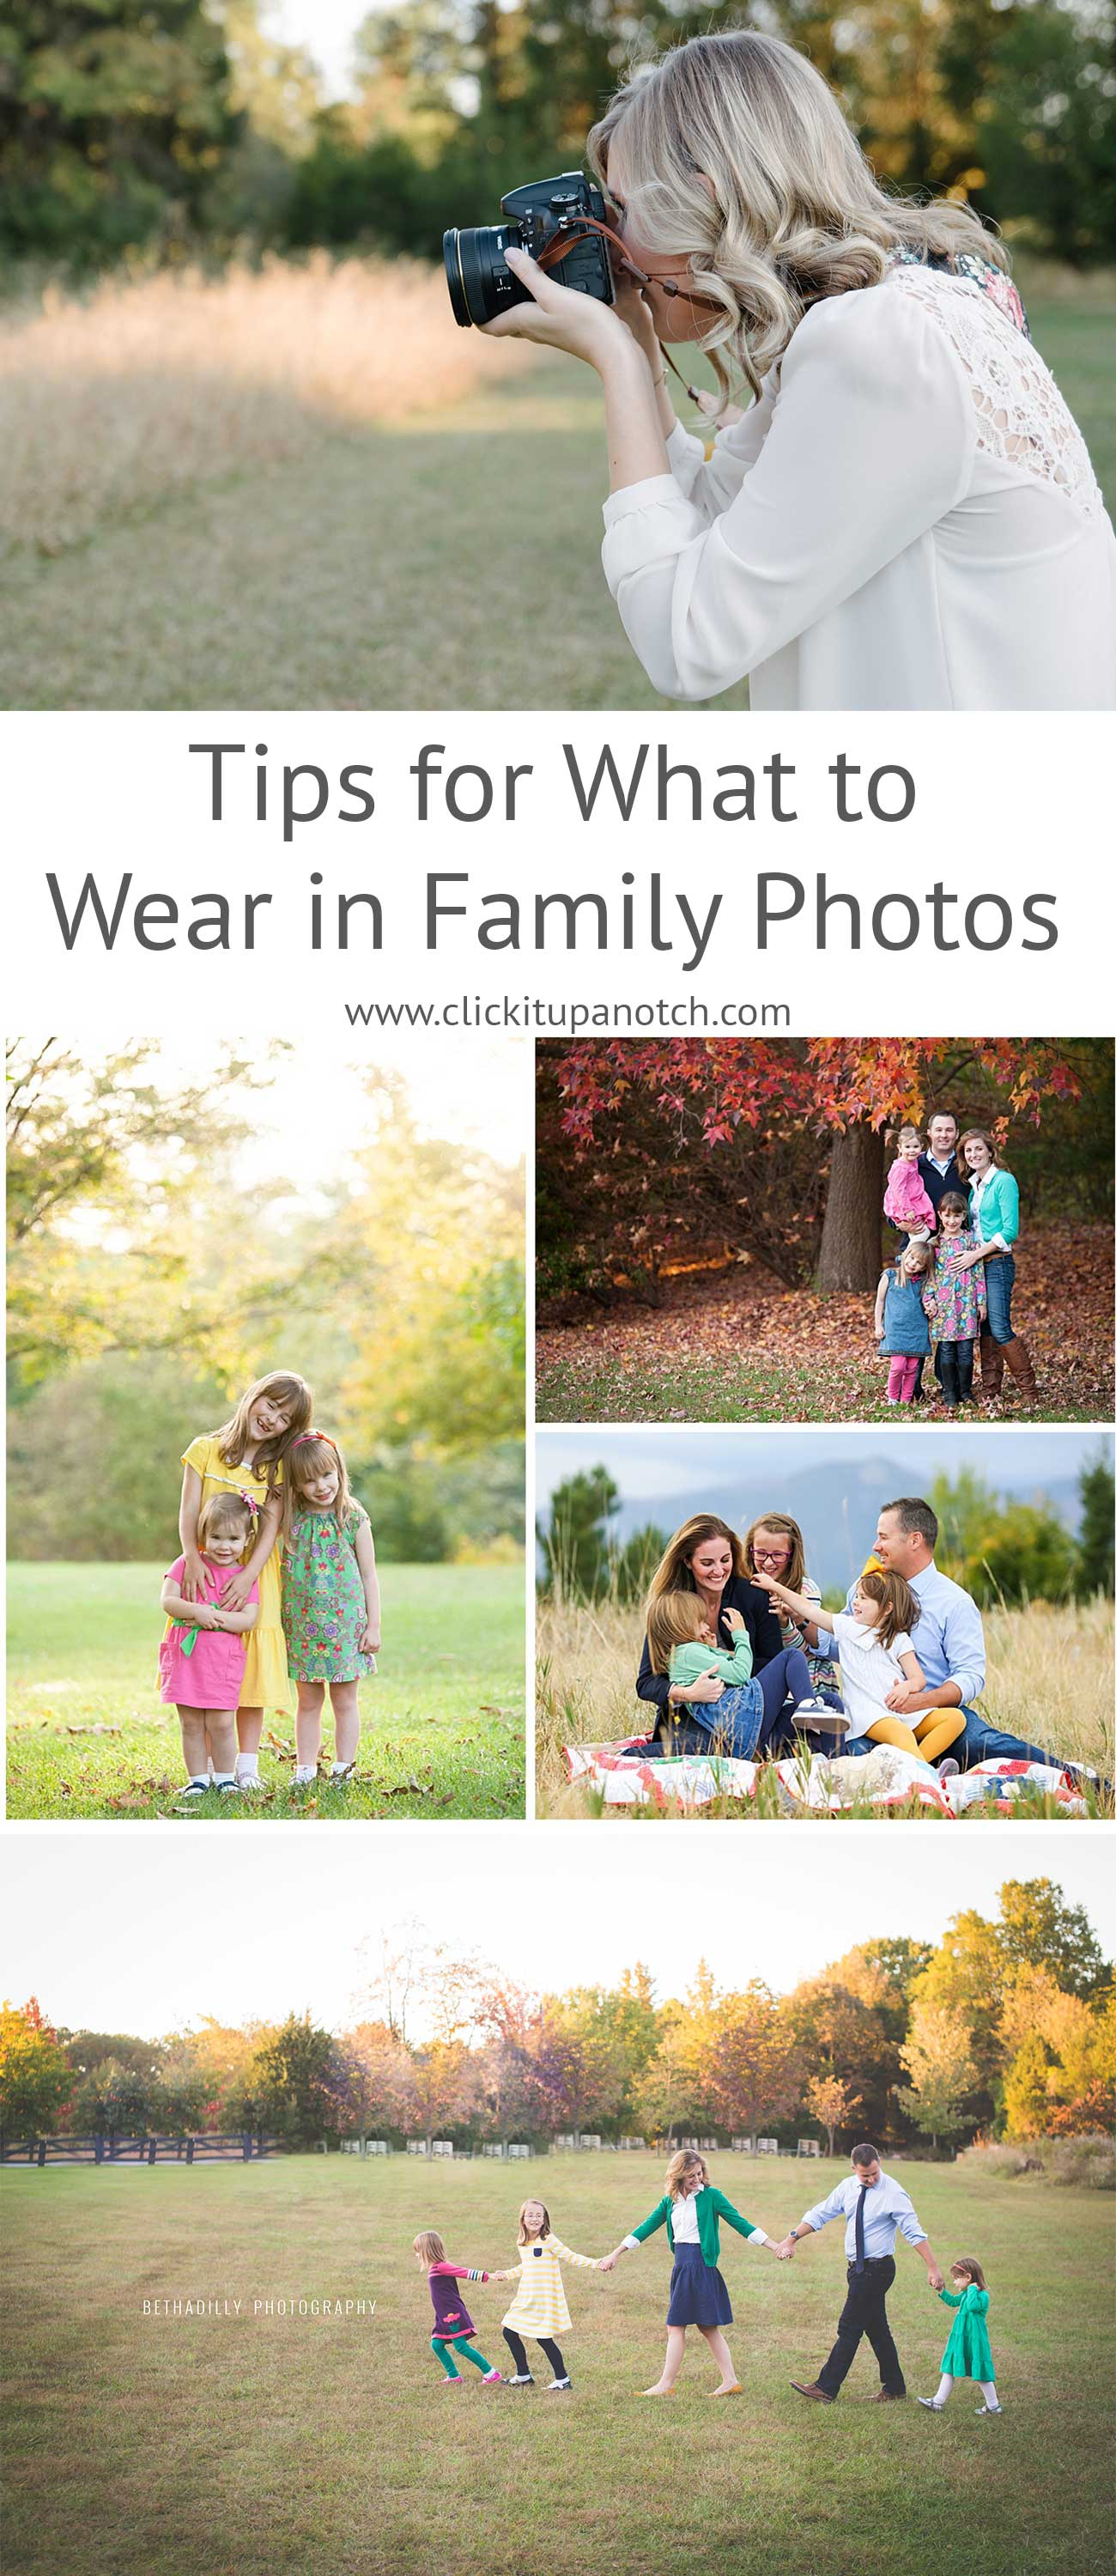 11 tips for what to wear in family photos. Gone are the days of matchy matchy. Learn how to rock your family photos and figure out what to wear.